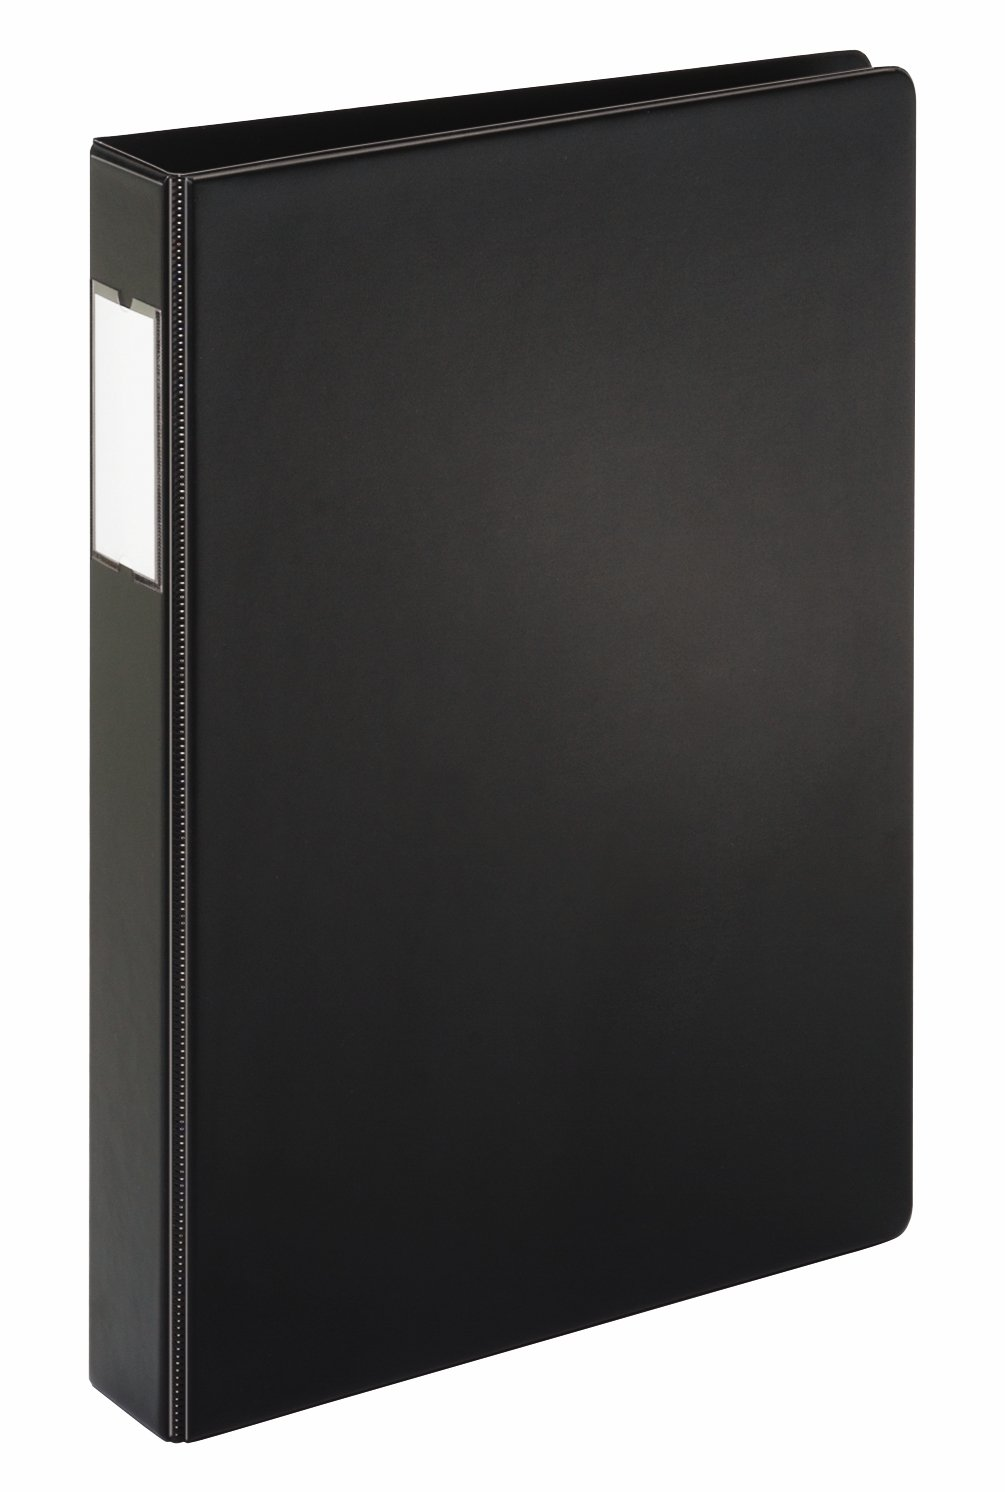 Cardinal 14532 Legal Slant D Ring Binder, 2 Cap, 14 x 8 1/2, Black 2 Cap 14532V3